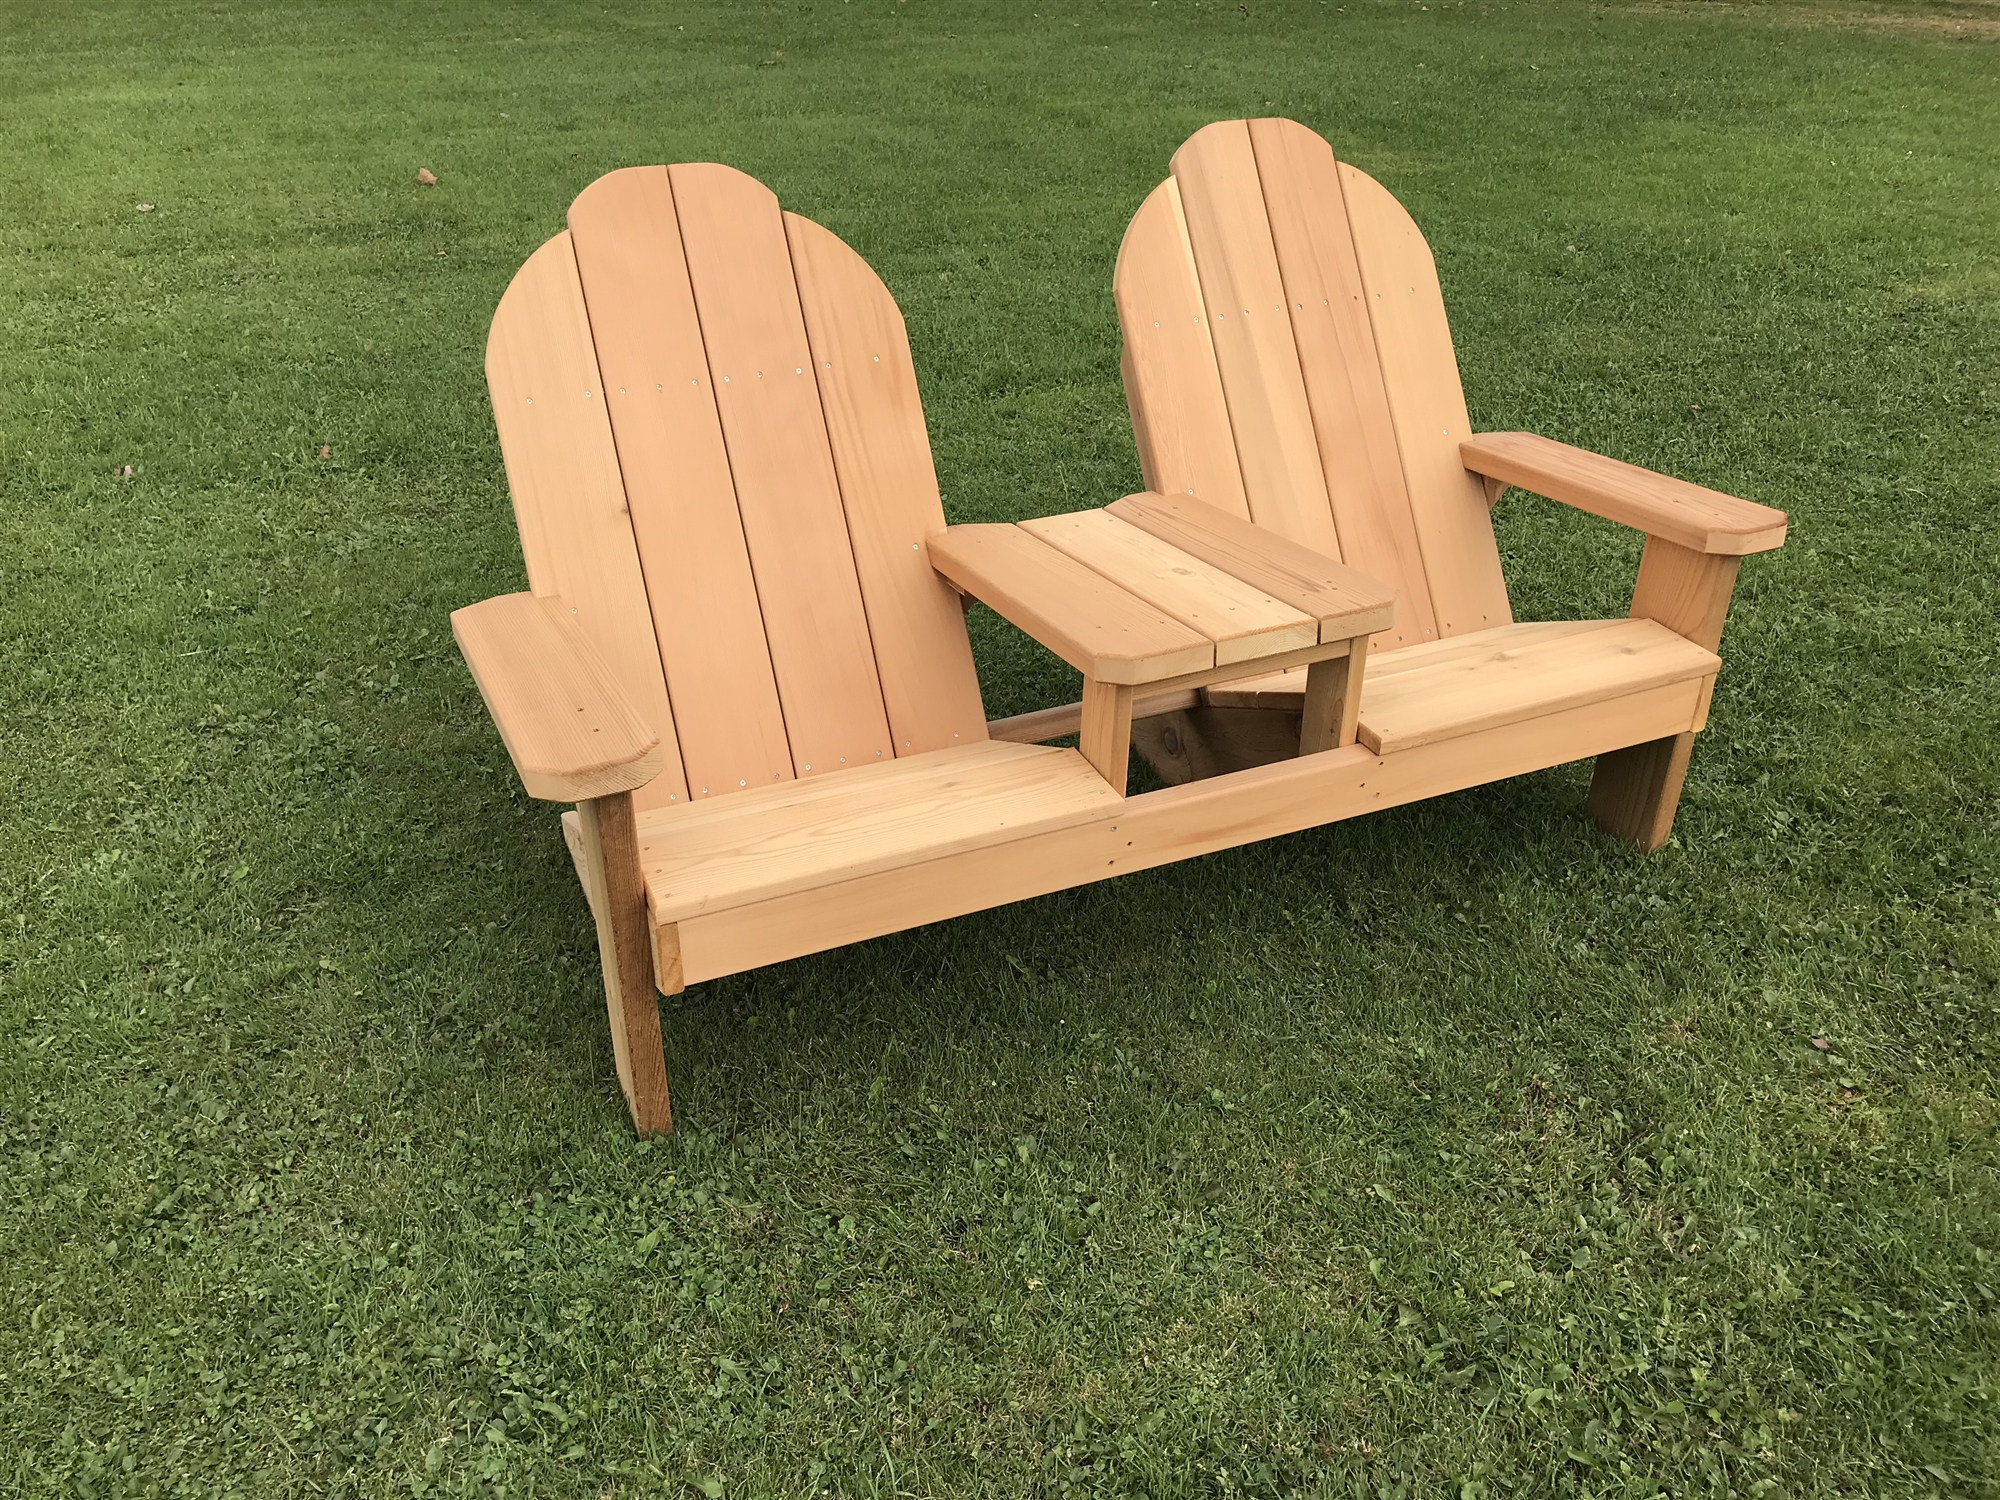 tete a chair outdoor hanging chairs australia two person slanted seating e adirondack bench